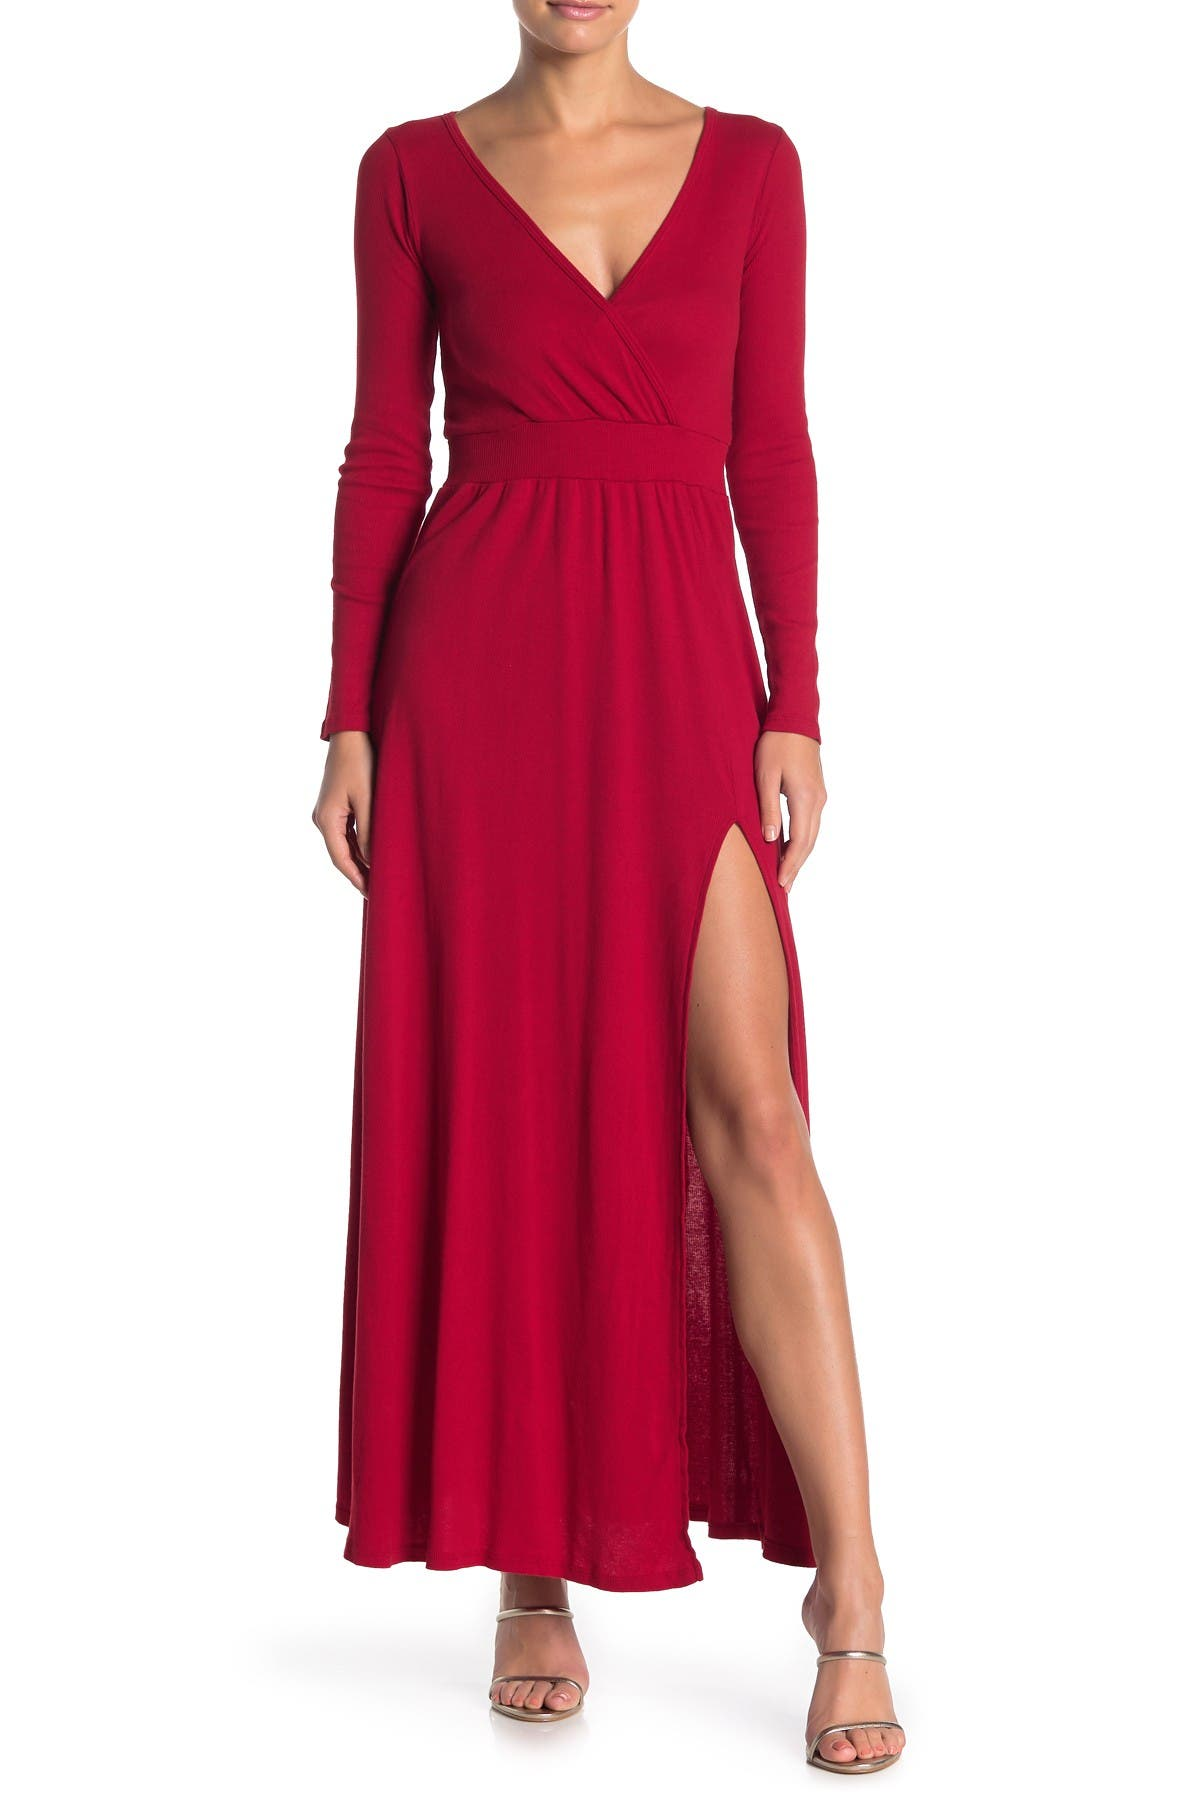 Image of Go Couture Slit Maxi Dress